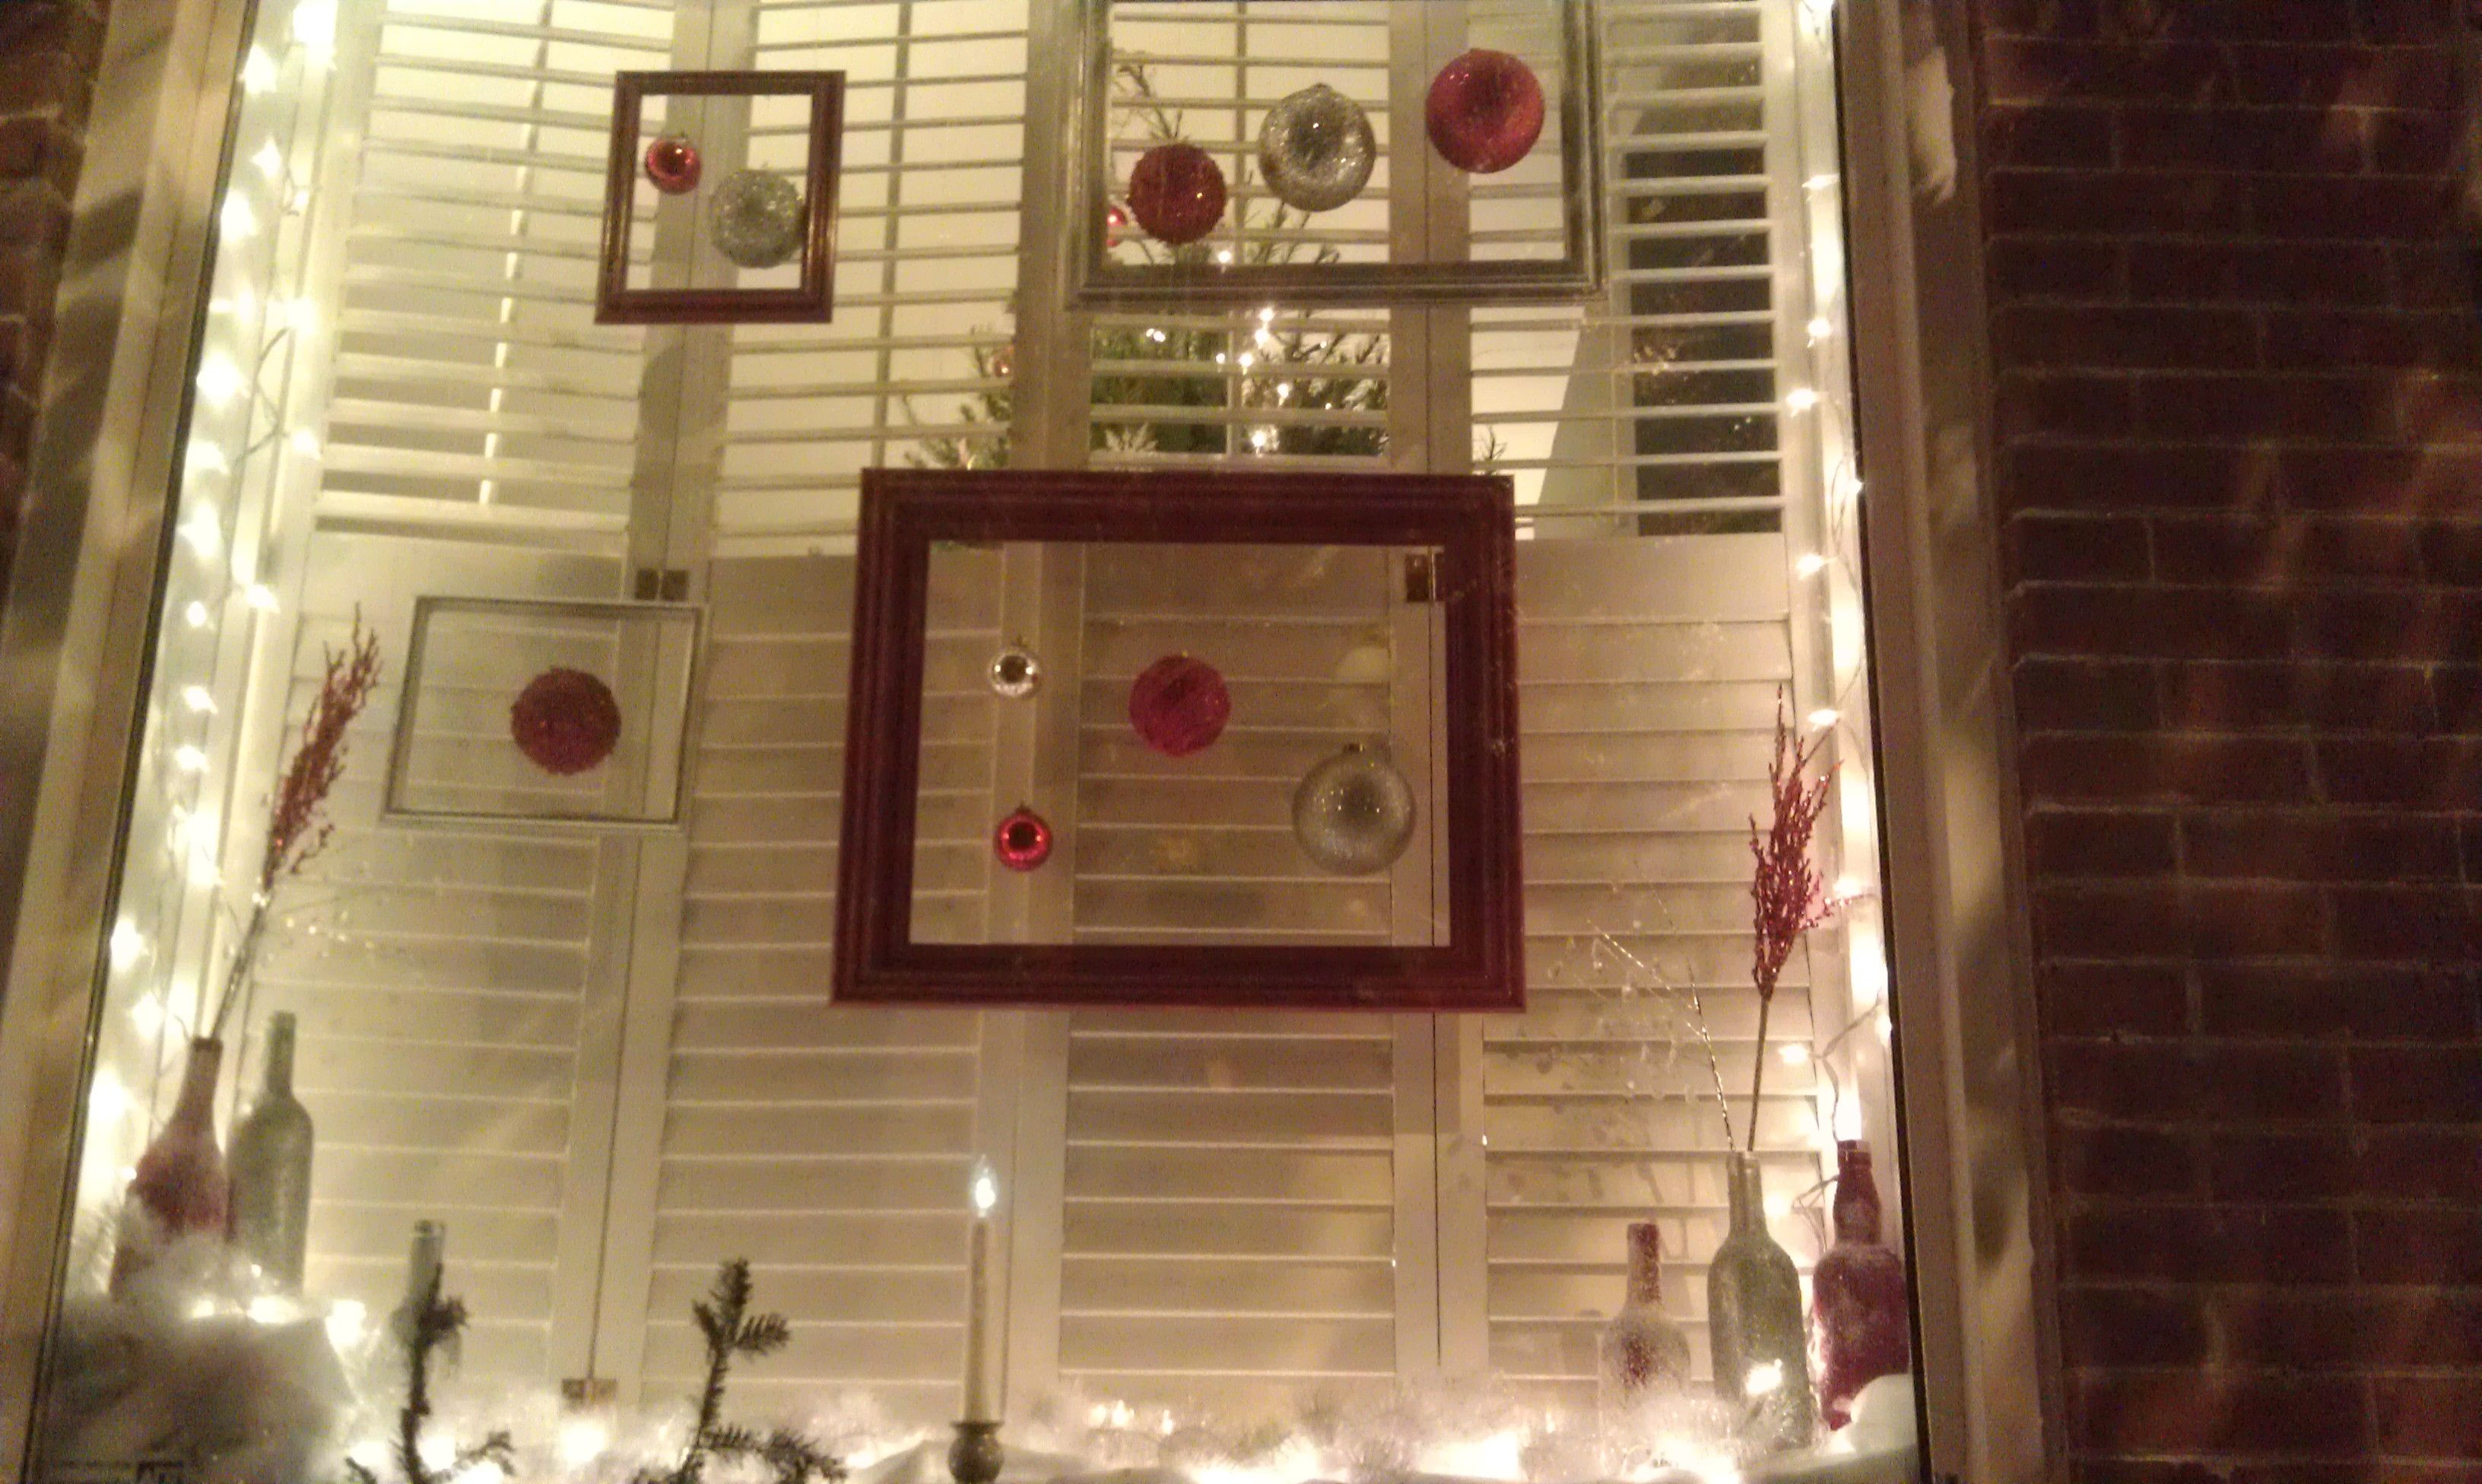 Window display ideas  holiday window display  home things  pinterest  window display